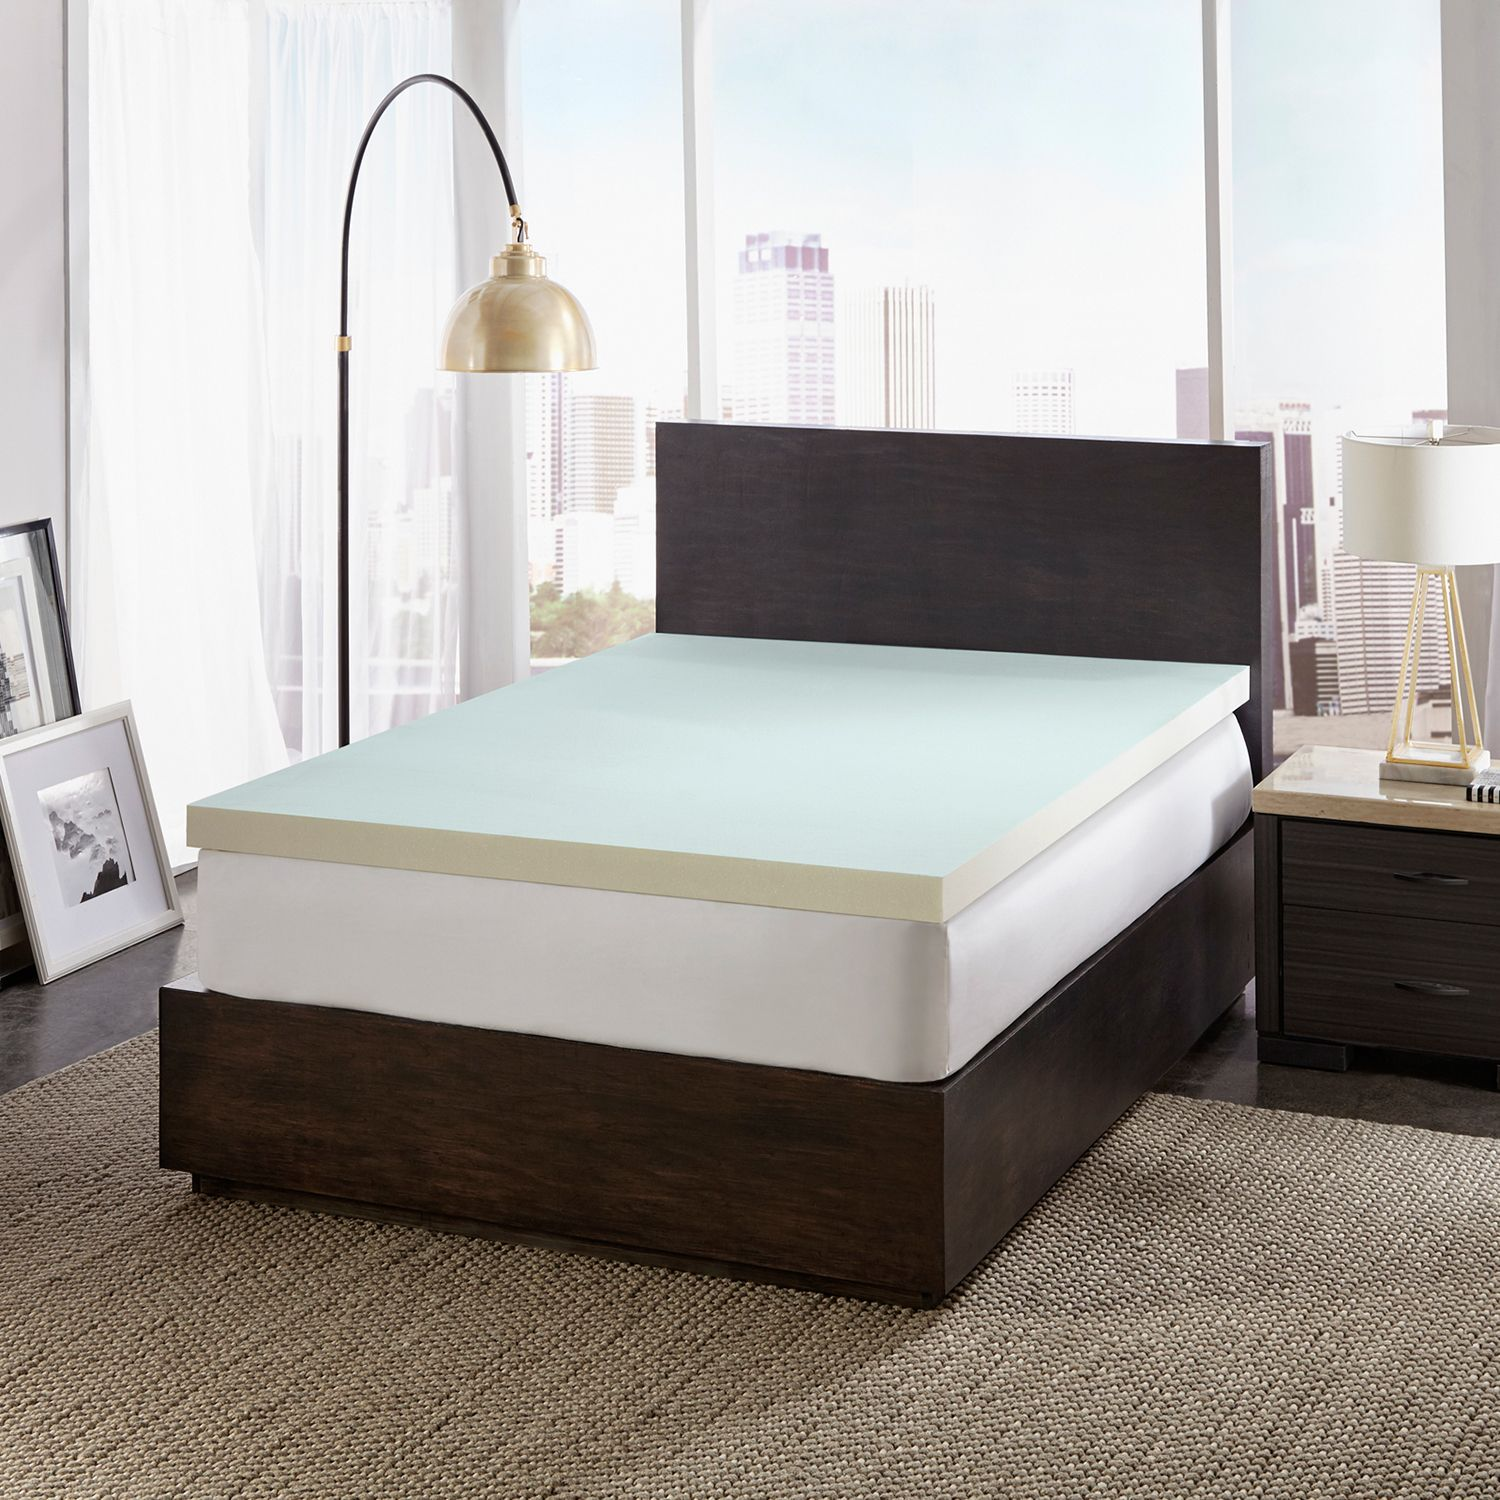 "Dreamfinity 3"" Cooling Memory Foam Mattress Topper (Full) - Walmart.com"